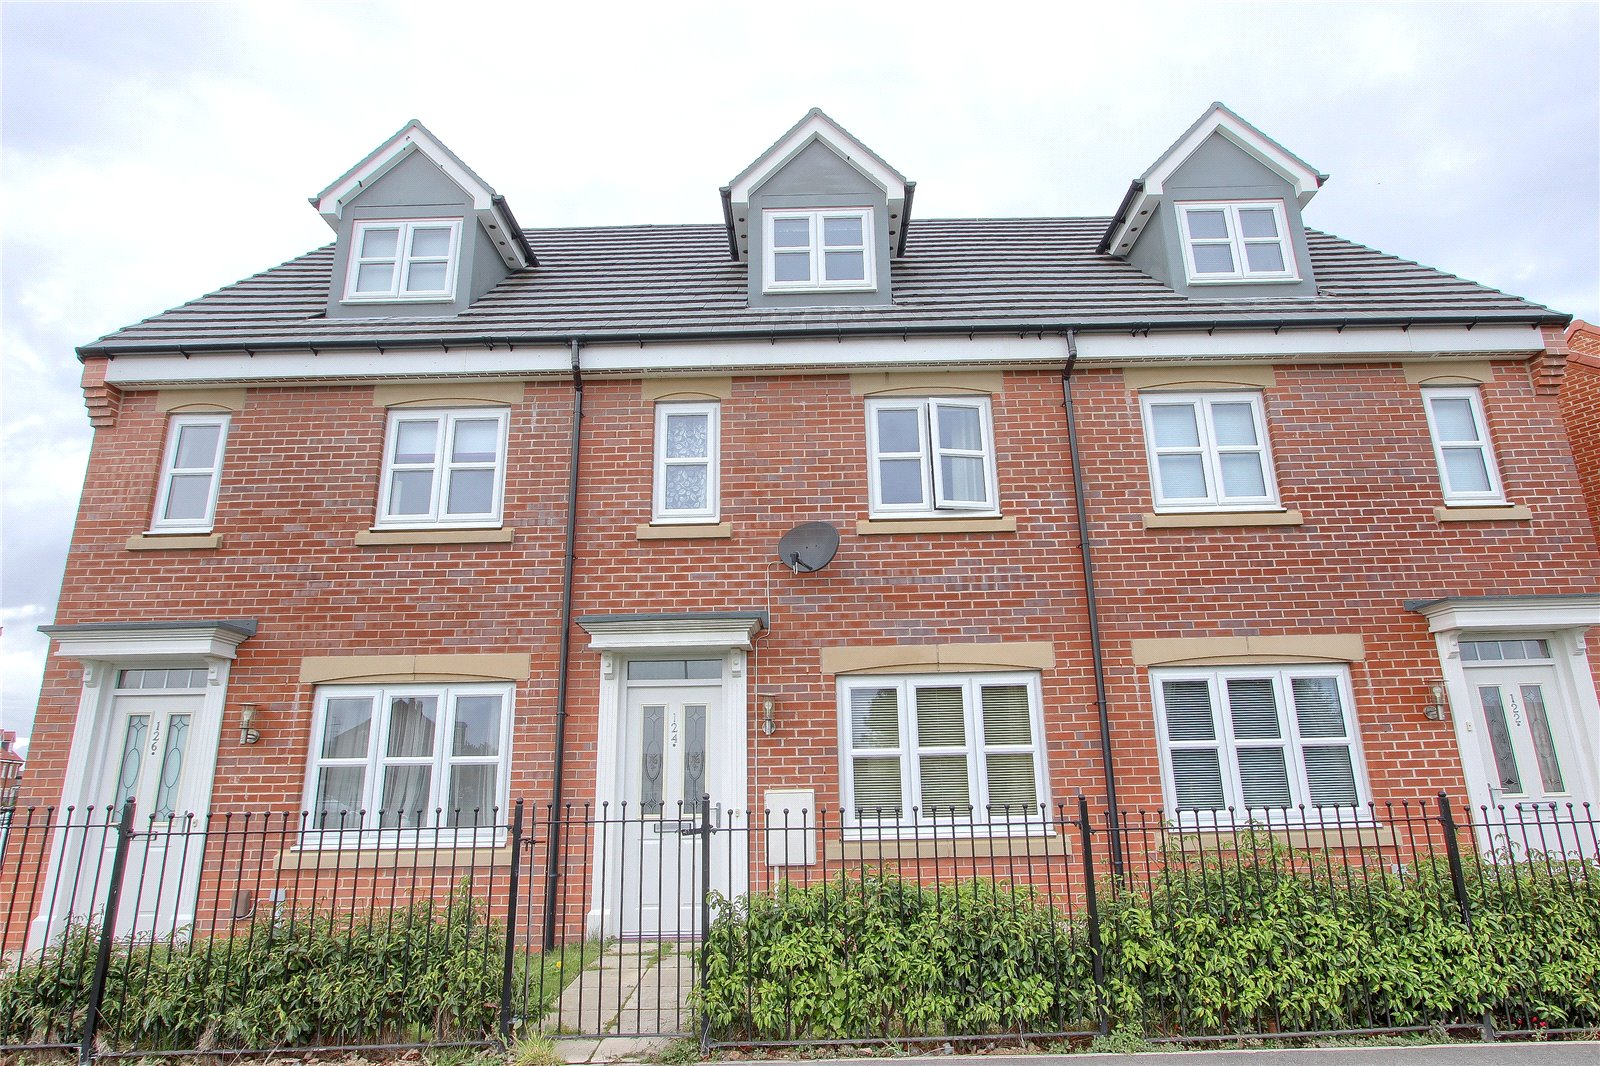 3 bed house for sale in Redcar Lane, Redcar 1